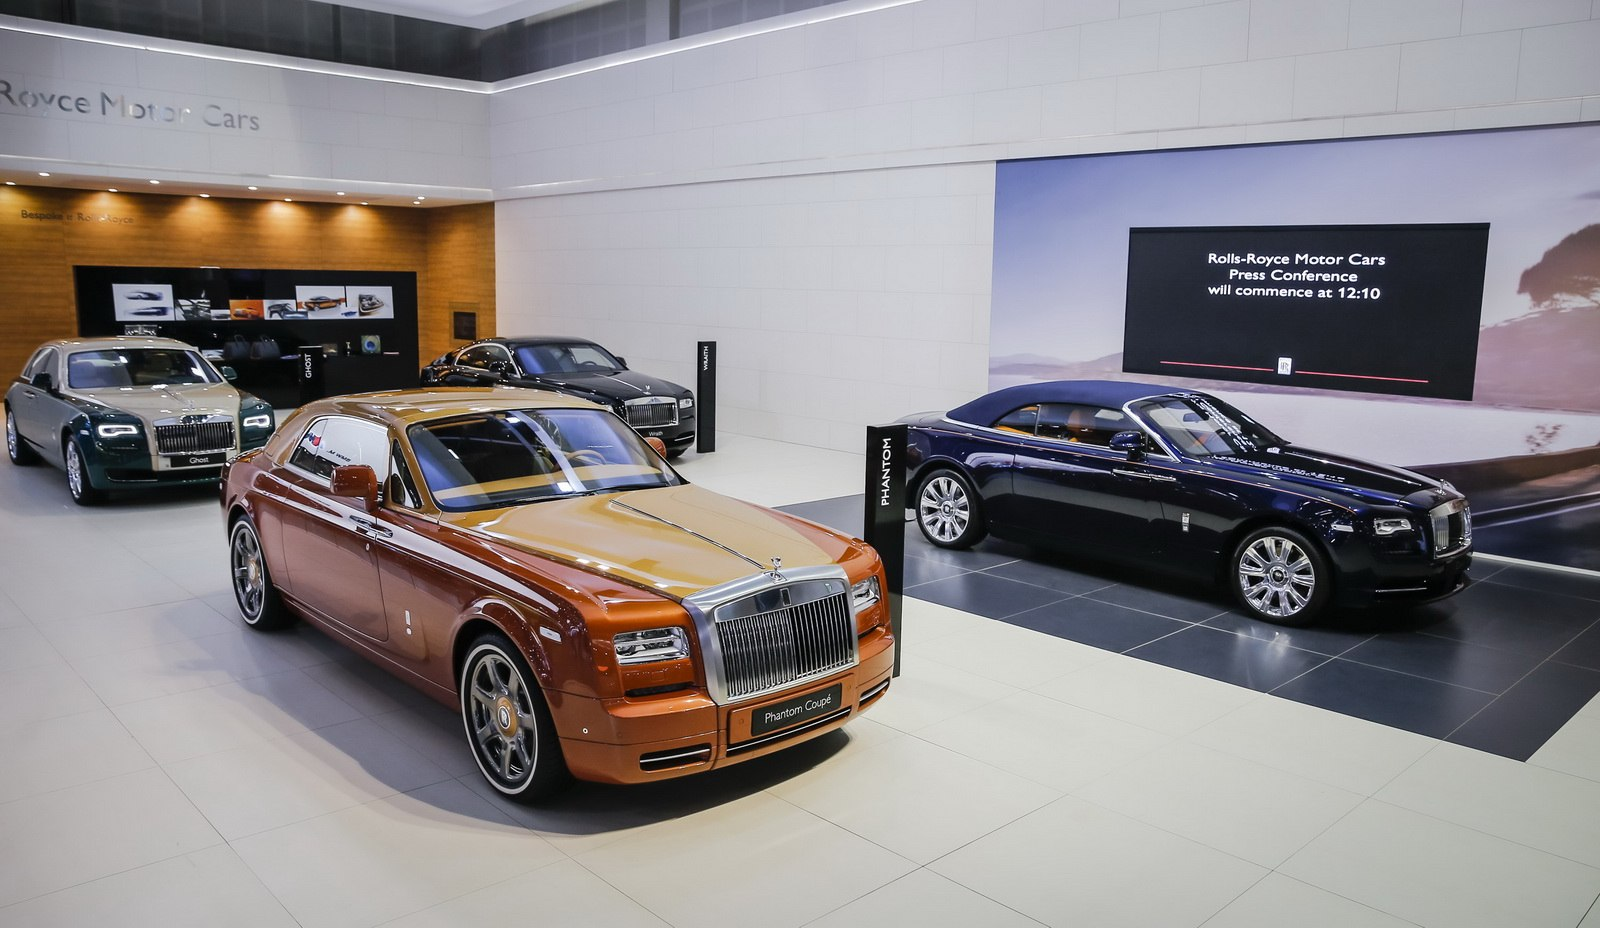 2015 Rolls-Royce Phantom Coupe Tiger Dubai 2